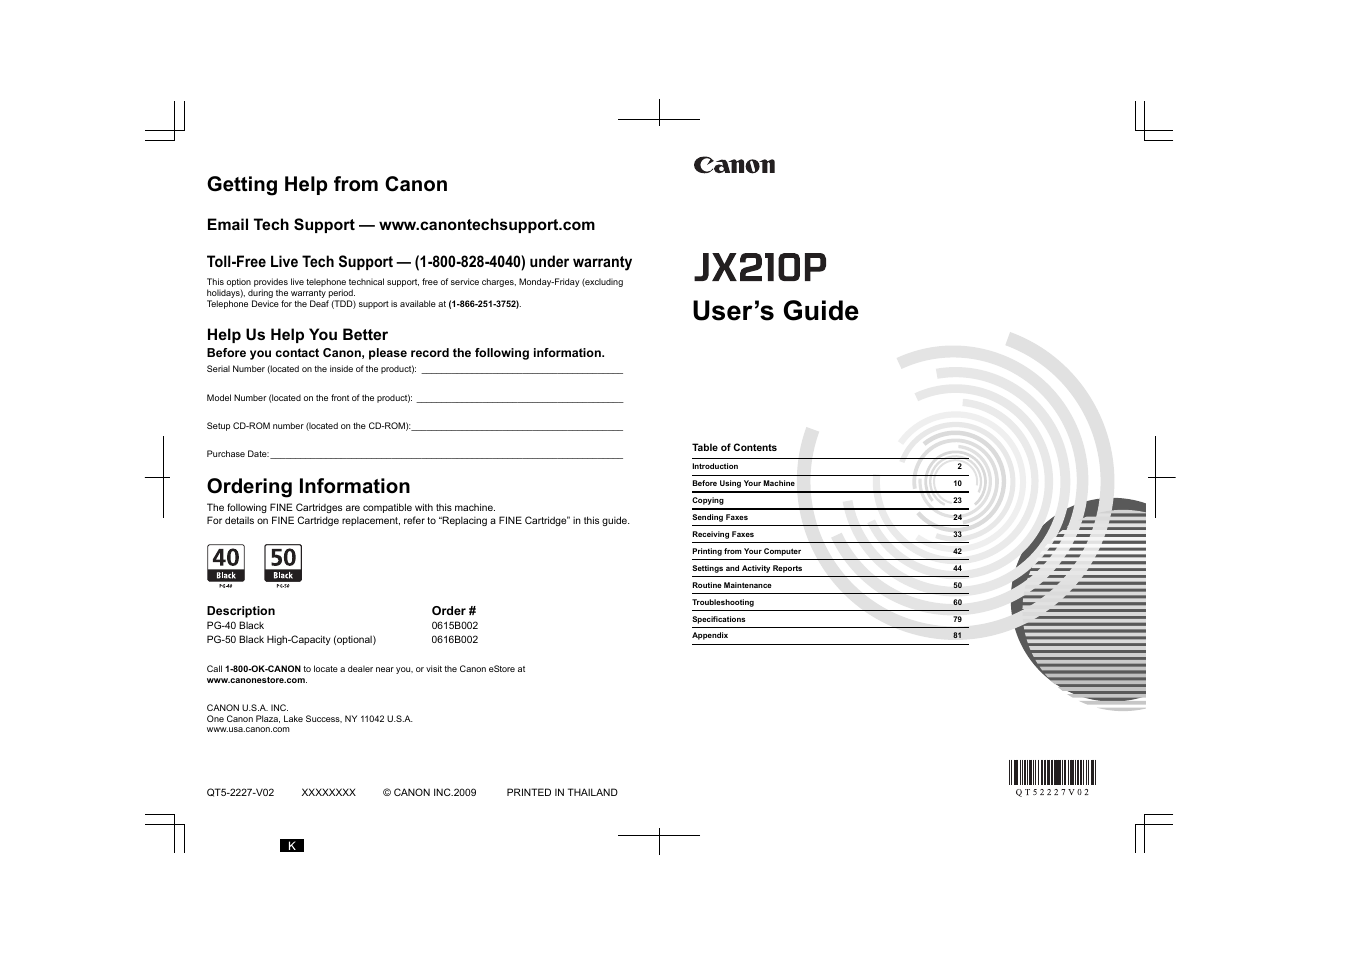 Canon FAX-JX210P User Manual | 86 pages | Also for: QT5-2227-V02, FAX-JX210,  JX210P